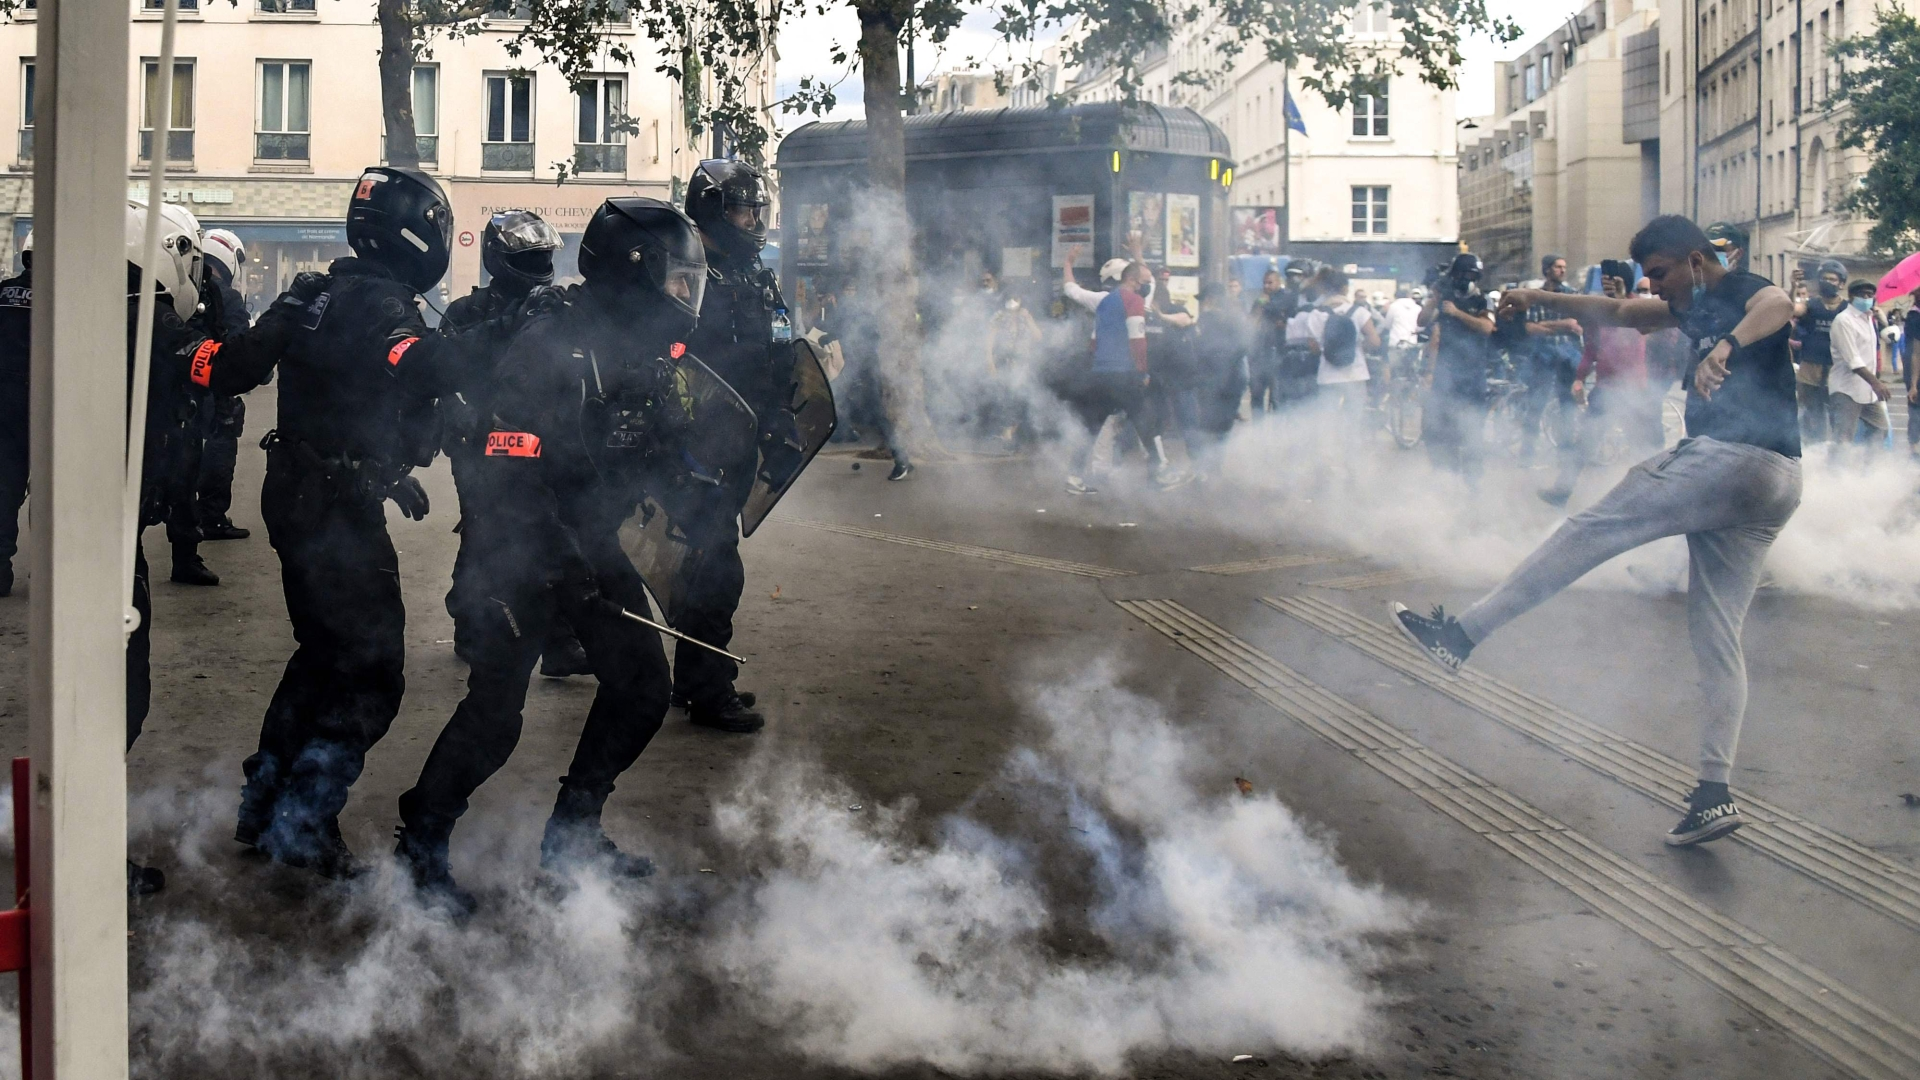 Paris police fire tear gas as anti-vaccine protests swell - The Washington  Post